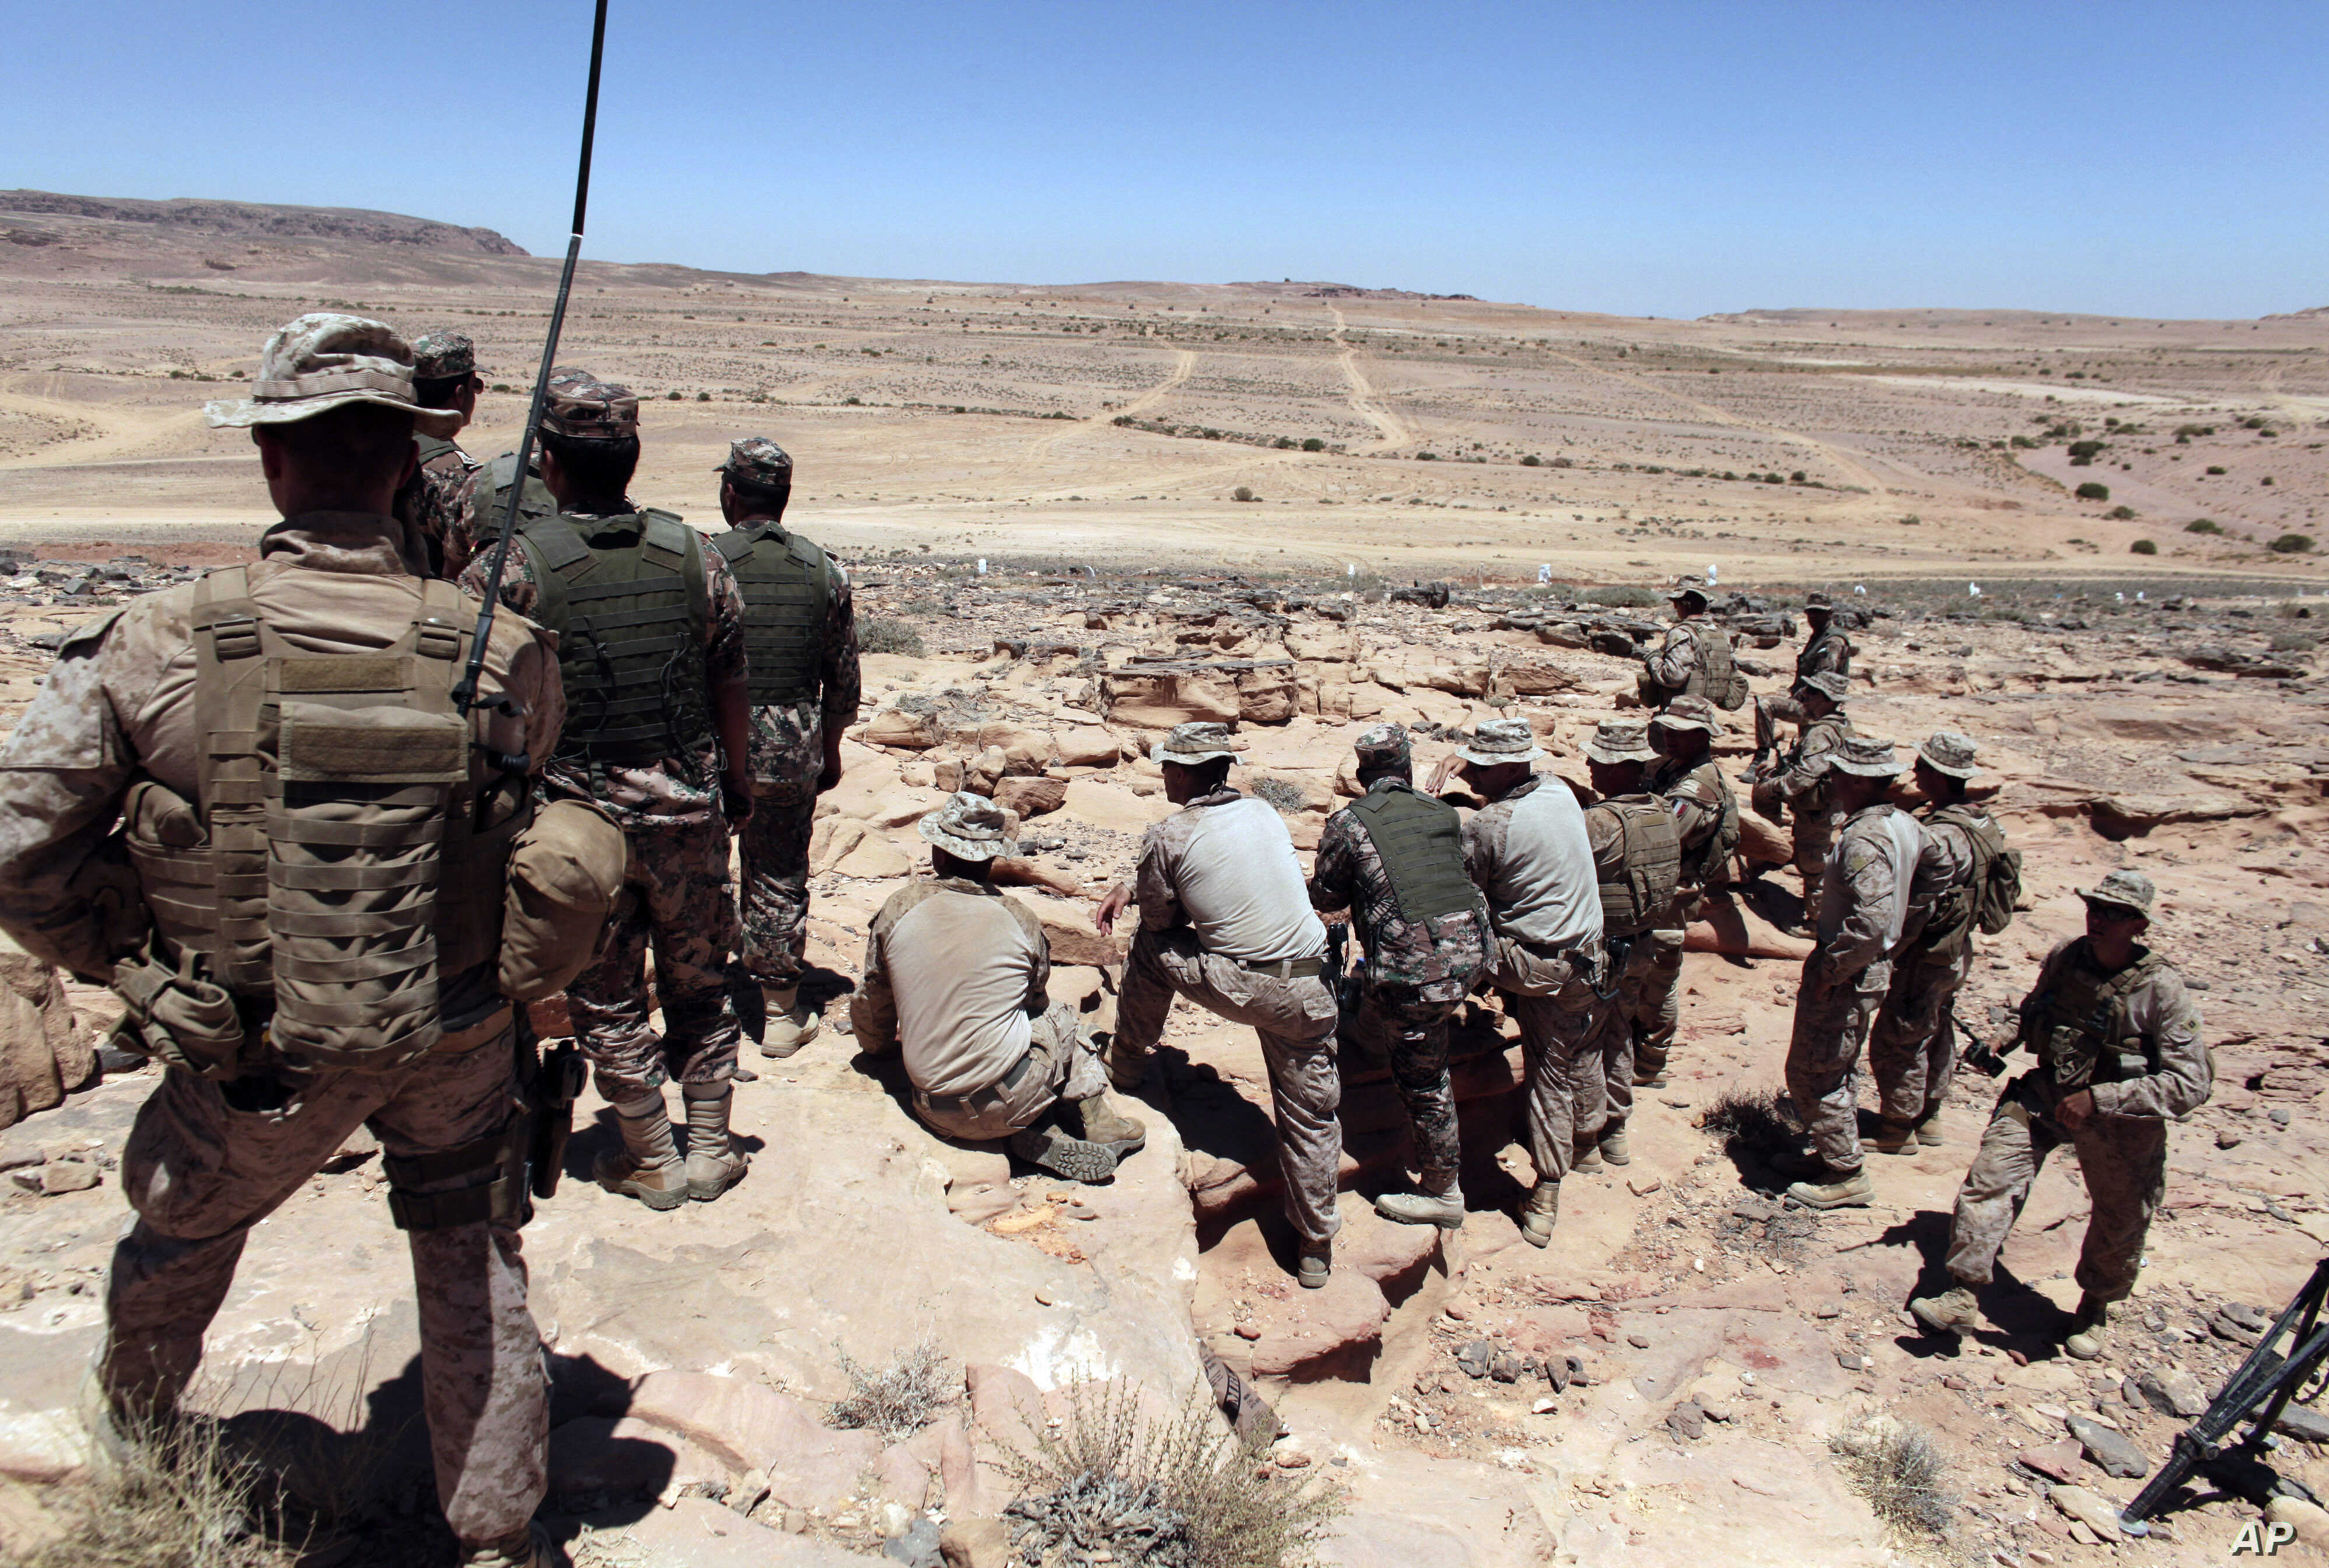 FILE - U.S. Marines monitor Eager Lion multinational military maneuvers in Quweira, 186 miles south of Amman, Jordan, June 18, 2013. The Obama administration used U.S. military trainers to help increase the capabilities of the Syrian rebels.